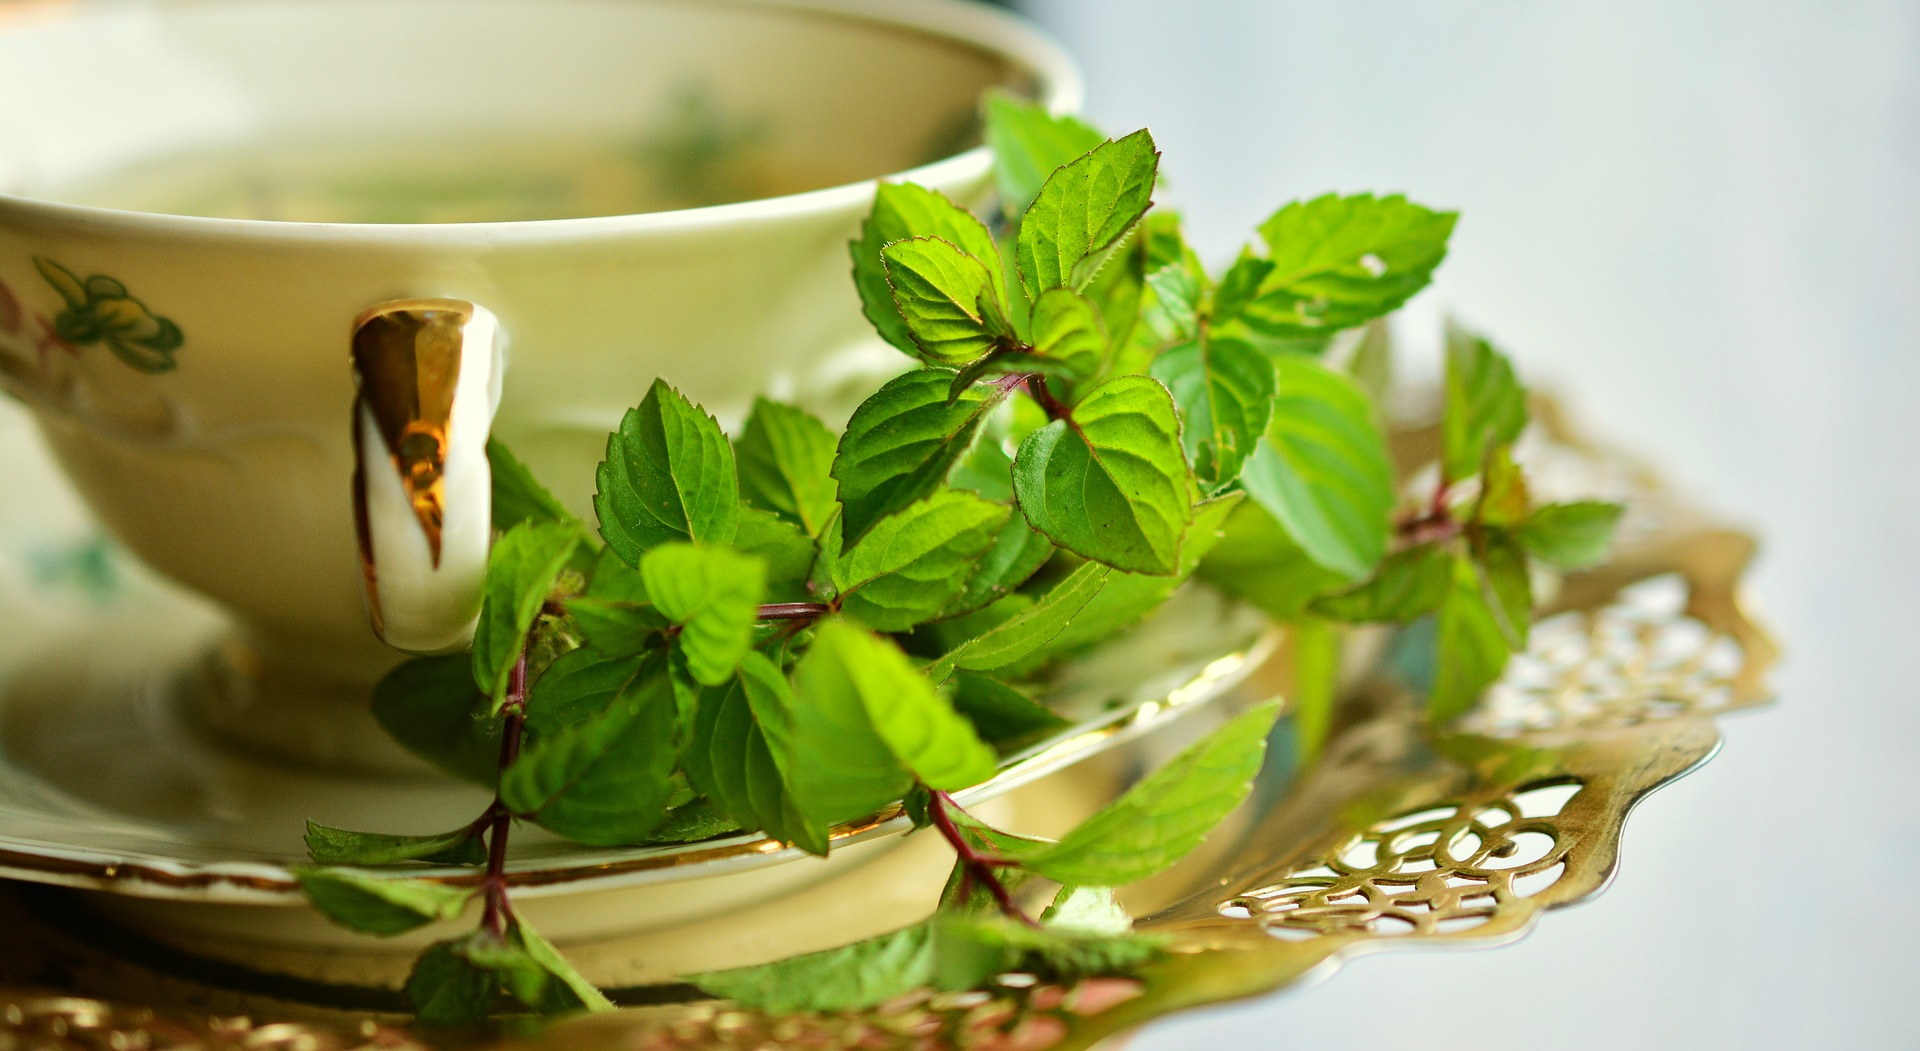 6 Healing herbs and spices that can boost your wellness every day